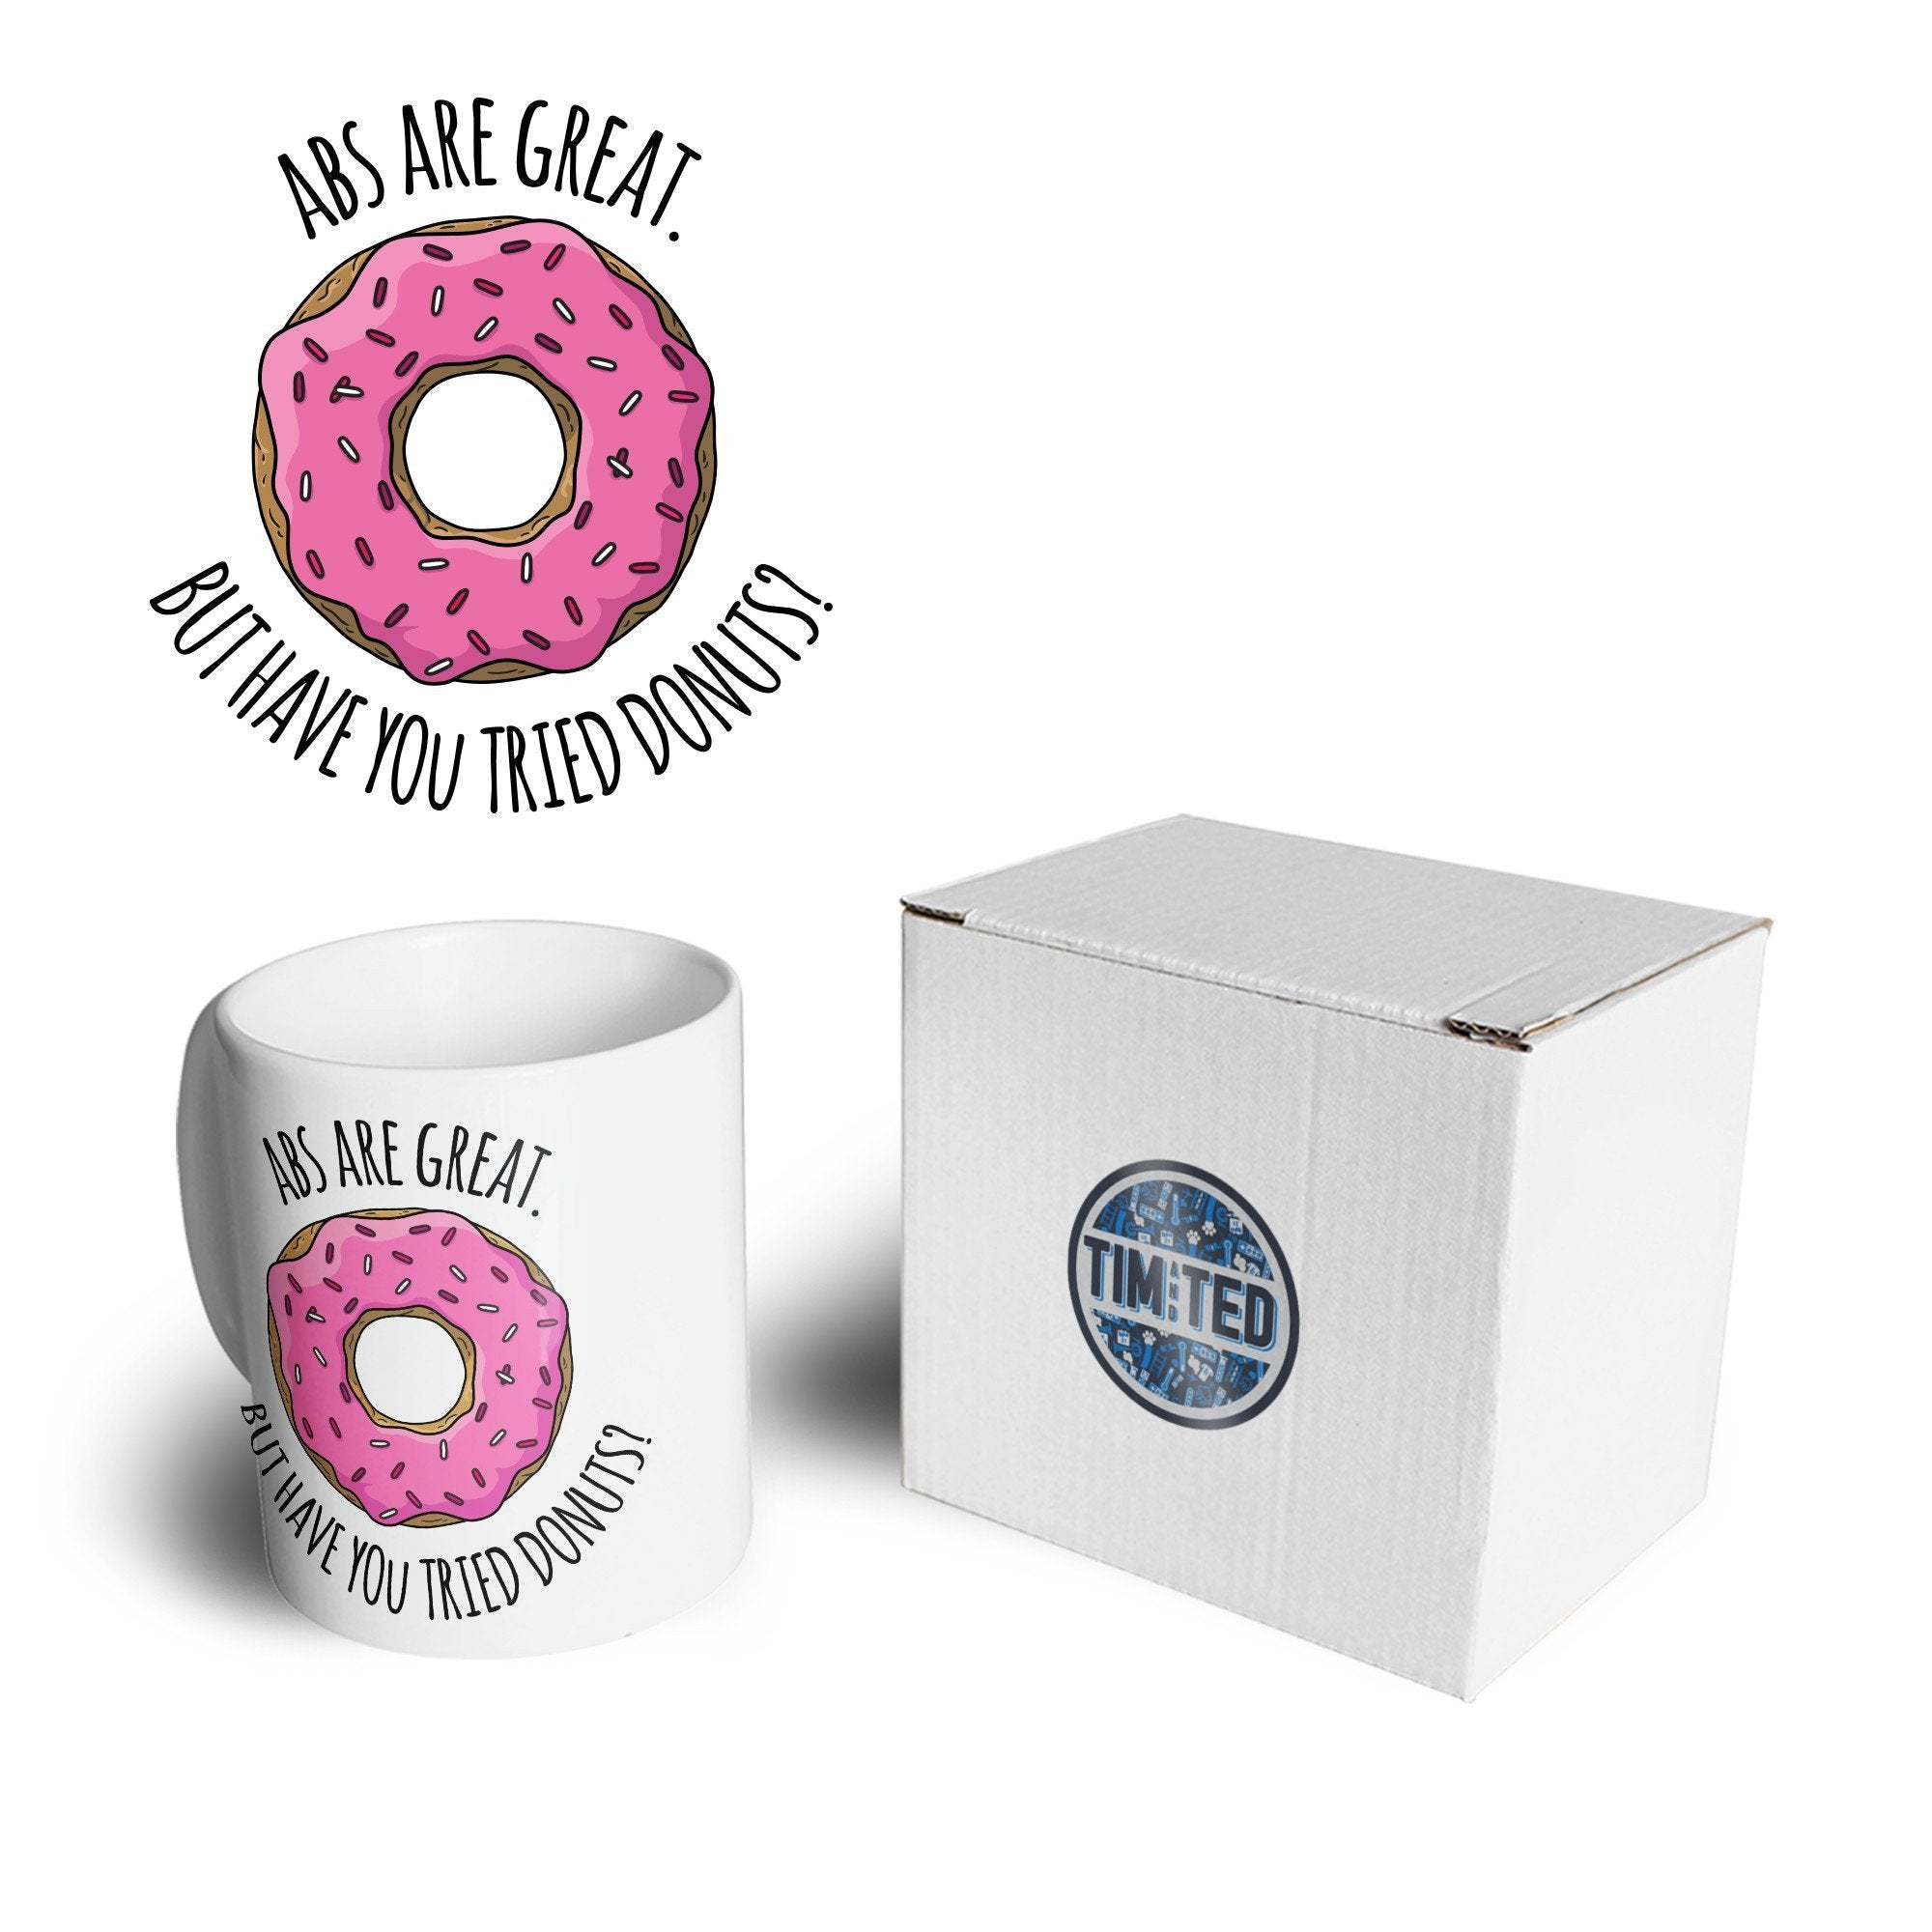 Joke Mug Abs Are Great But Have You Tried Donuts? Coffee Tea Cup